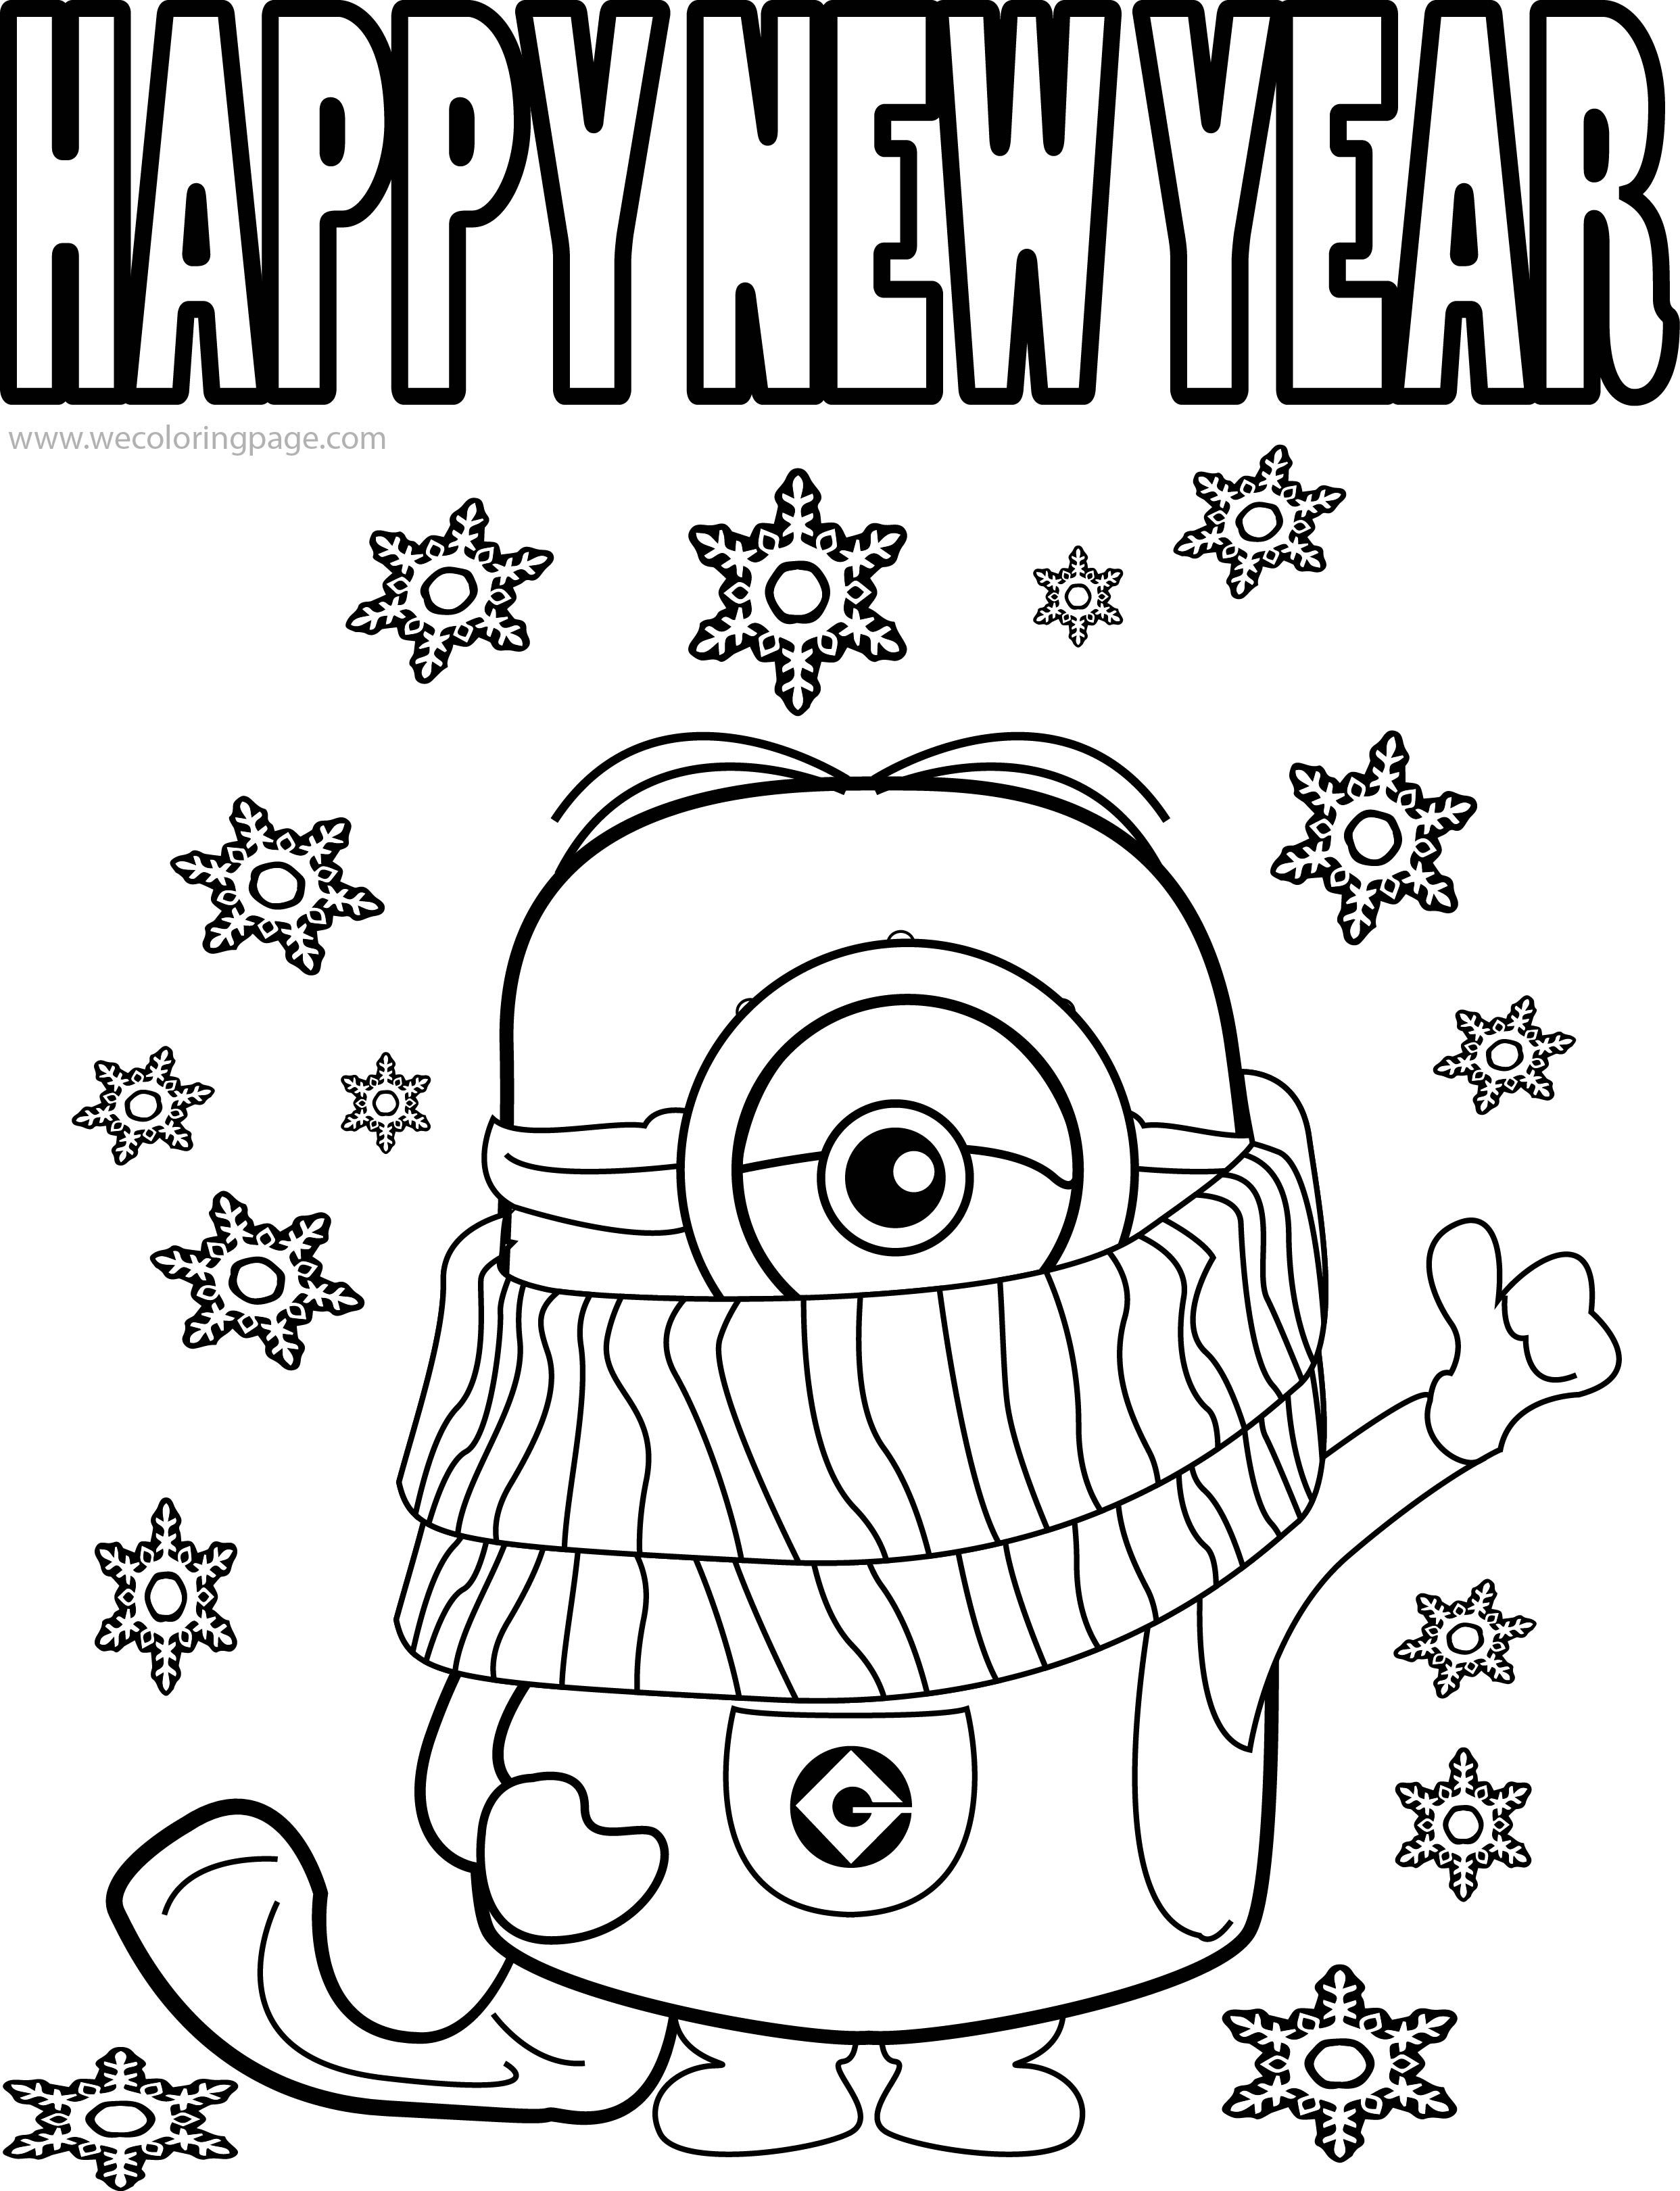 Christmas Coloring Pages Minions With Best Funny Quotes And Picture Cold Weather Happy New Year